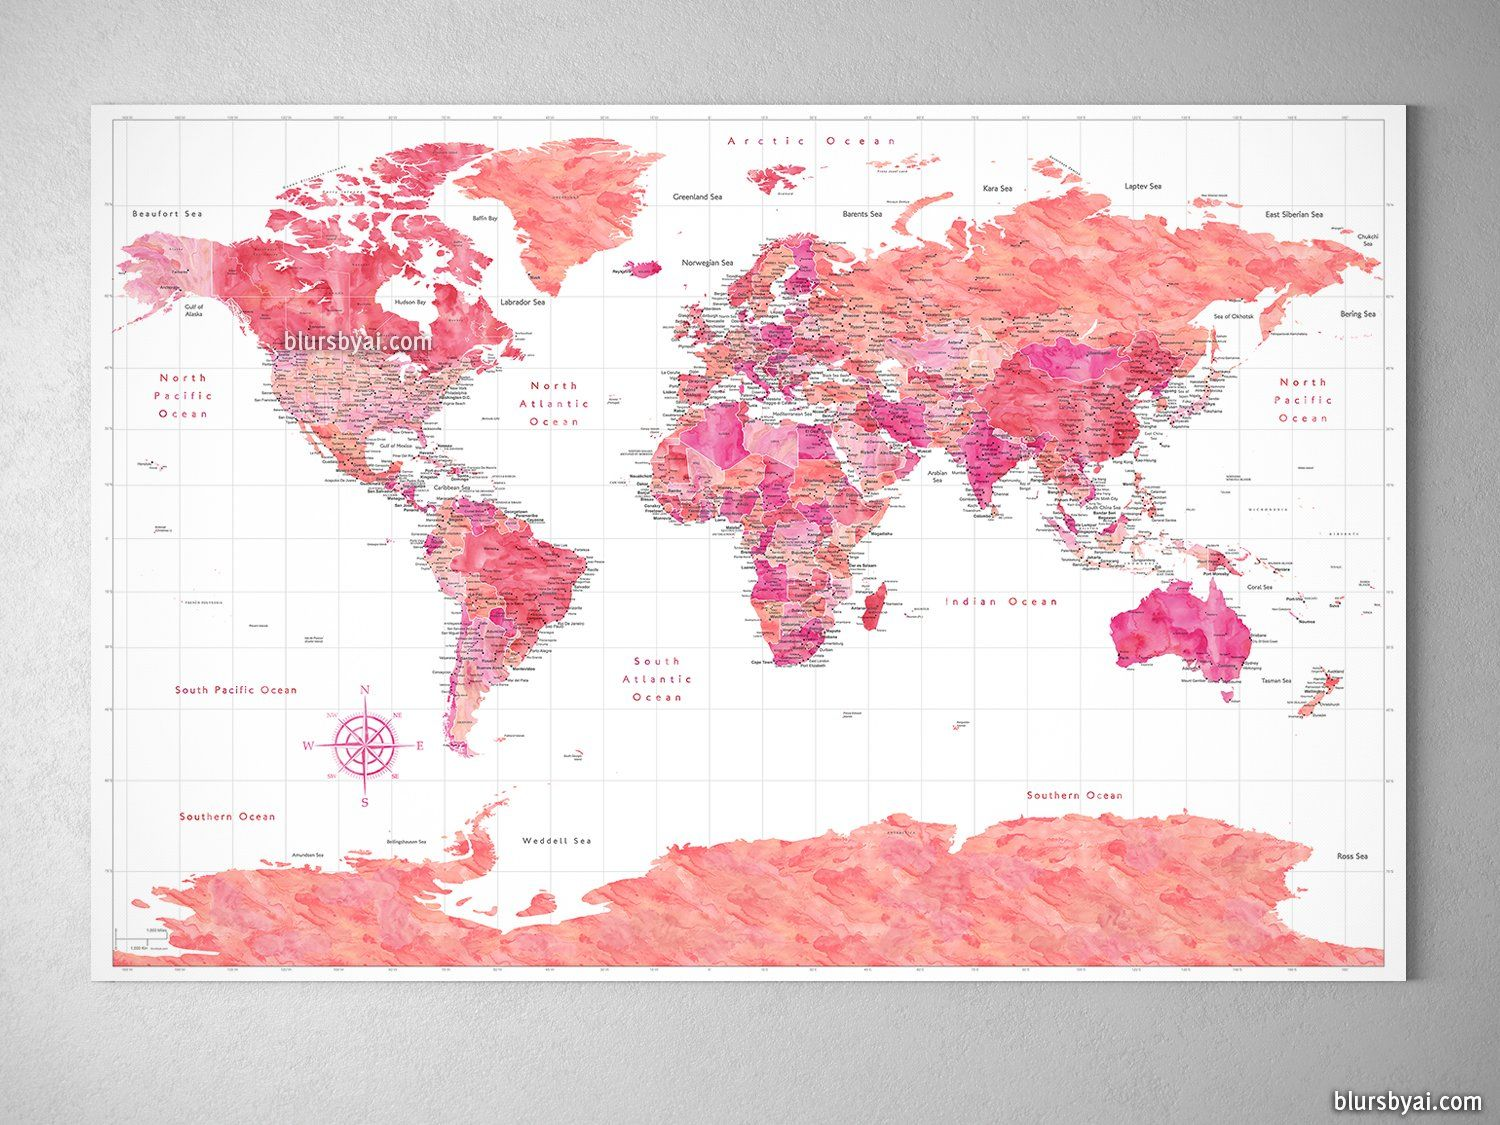 Orange and pink world map with cities and antarctica canvas print orange and pink world map with cities and antarctica canvas print or push pin map tatiana gumiabroncs Image collections